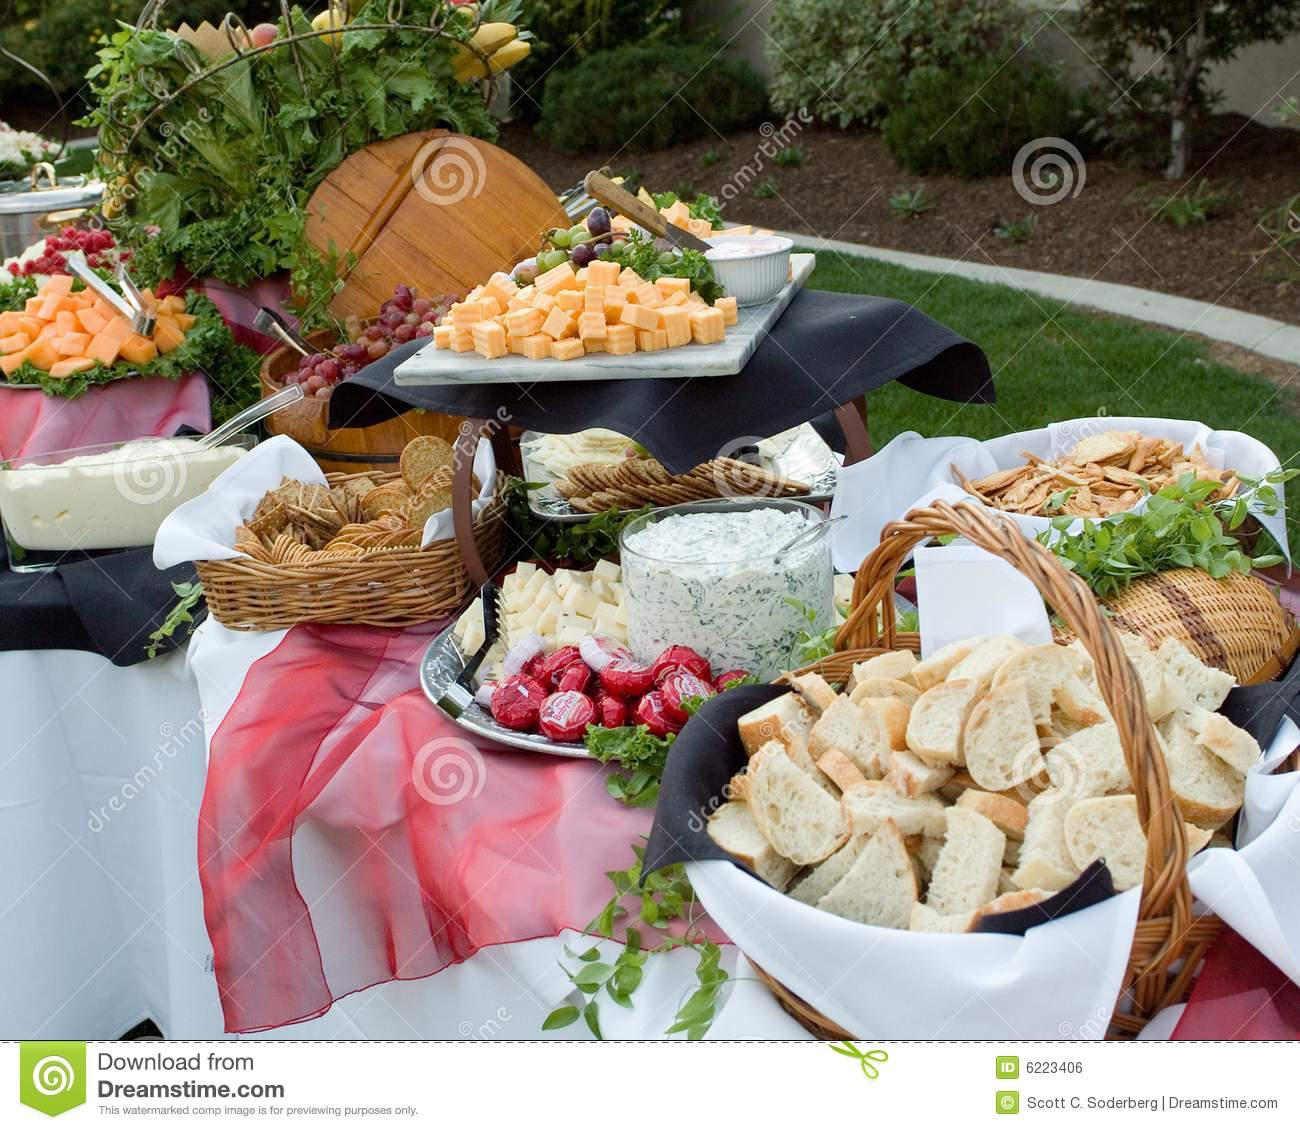 Summer Wedding Buffet Menu Ideas: Buffet Outdoors Stock Photo. Image Of Banquet, Baskets